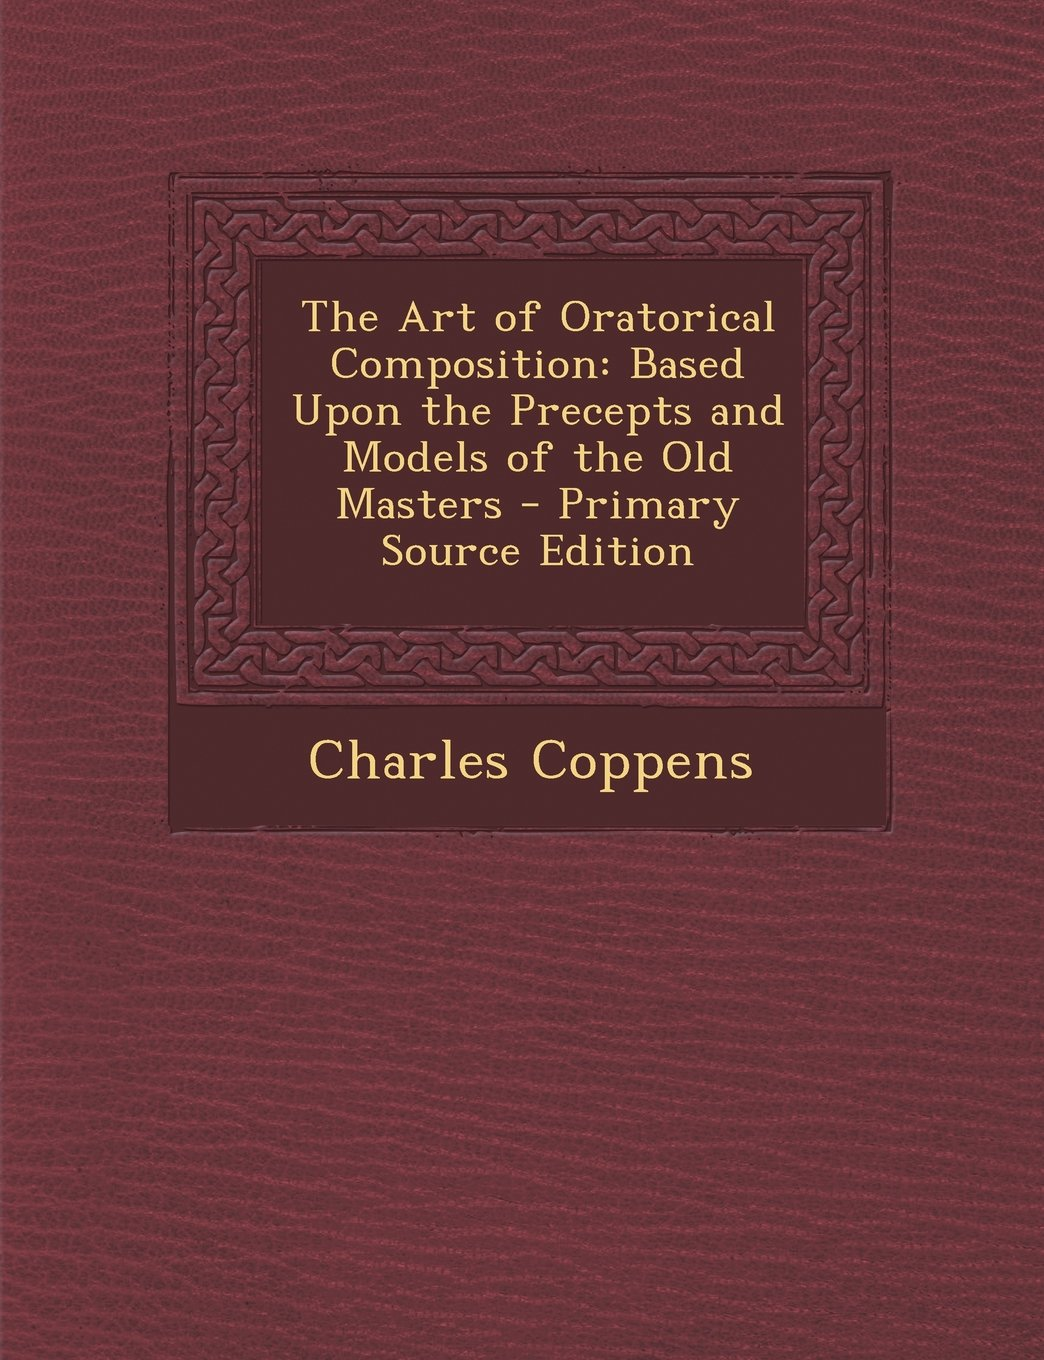 Download The Art of Oratorical Composition: Based Upon the Precepts and Models of the Old Masters - Primary Source Edition PDF